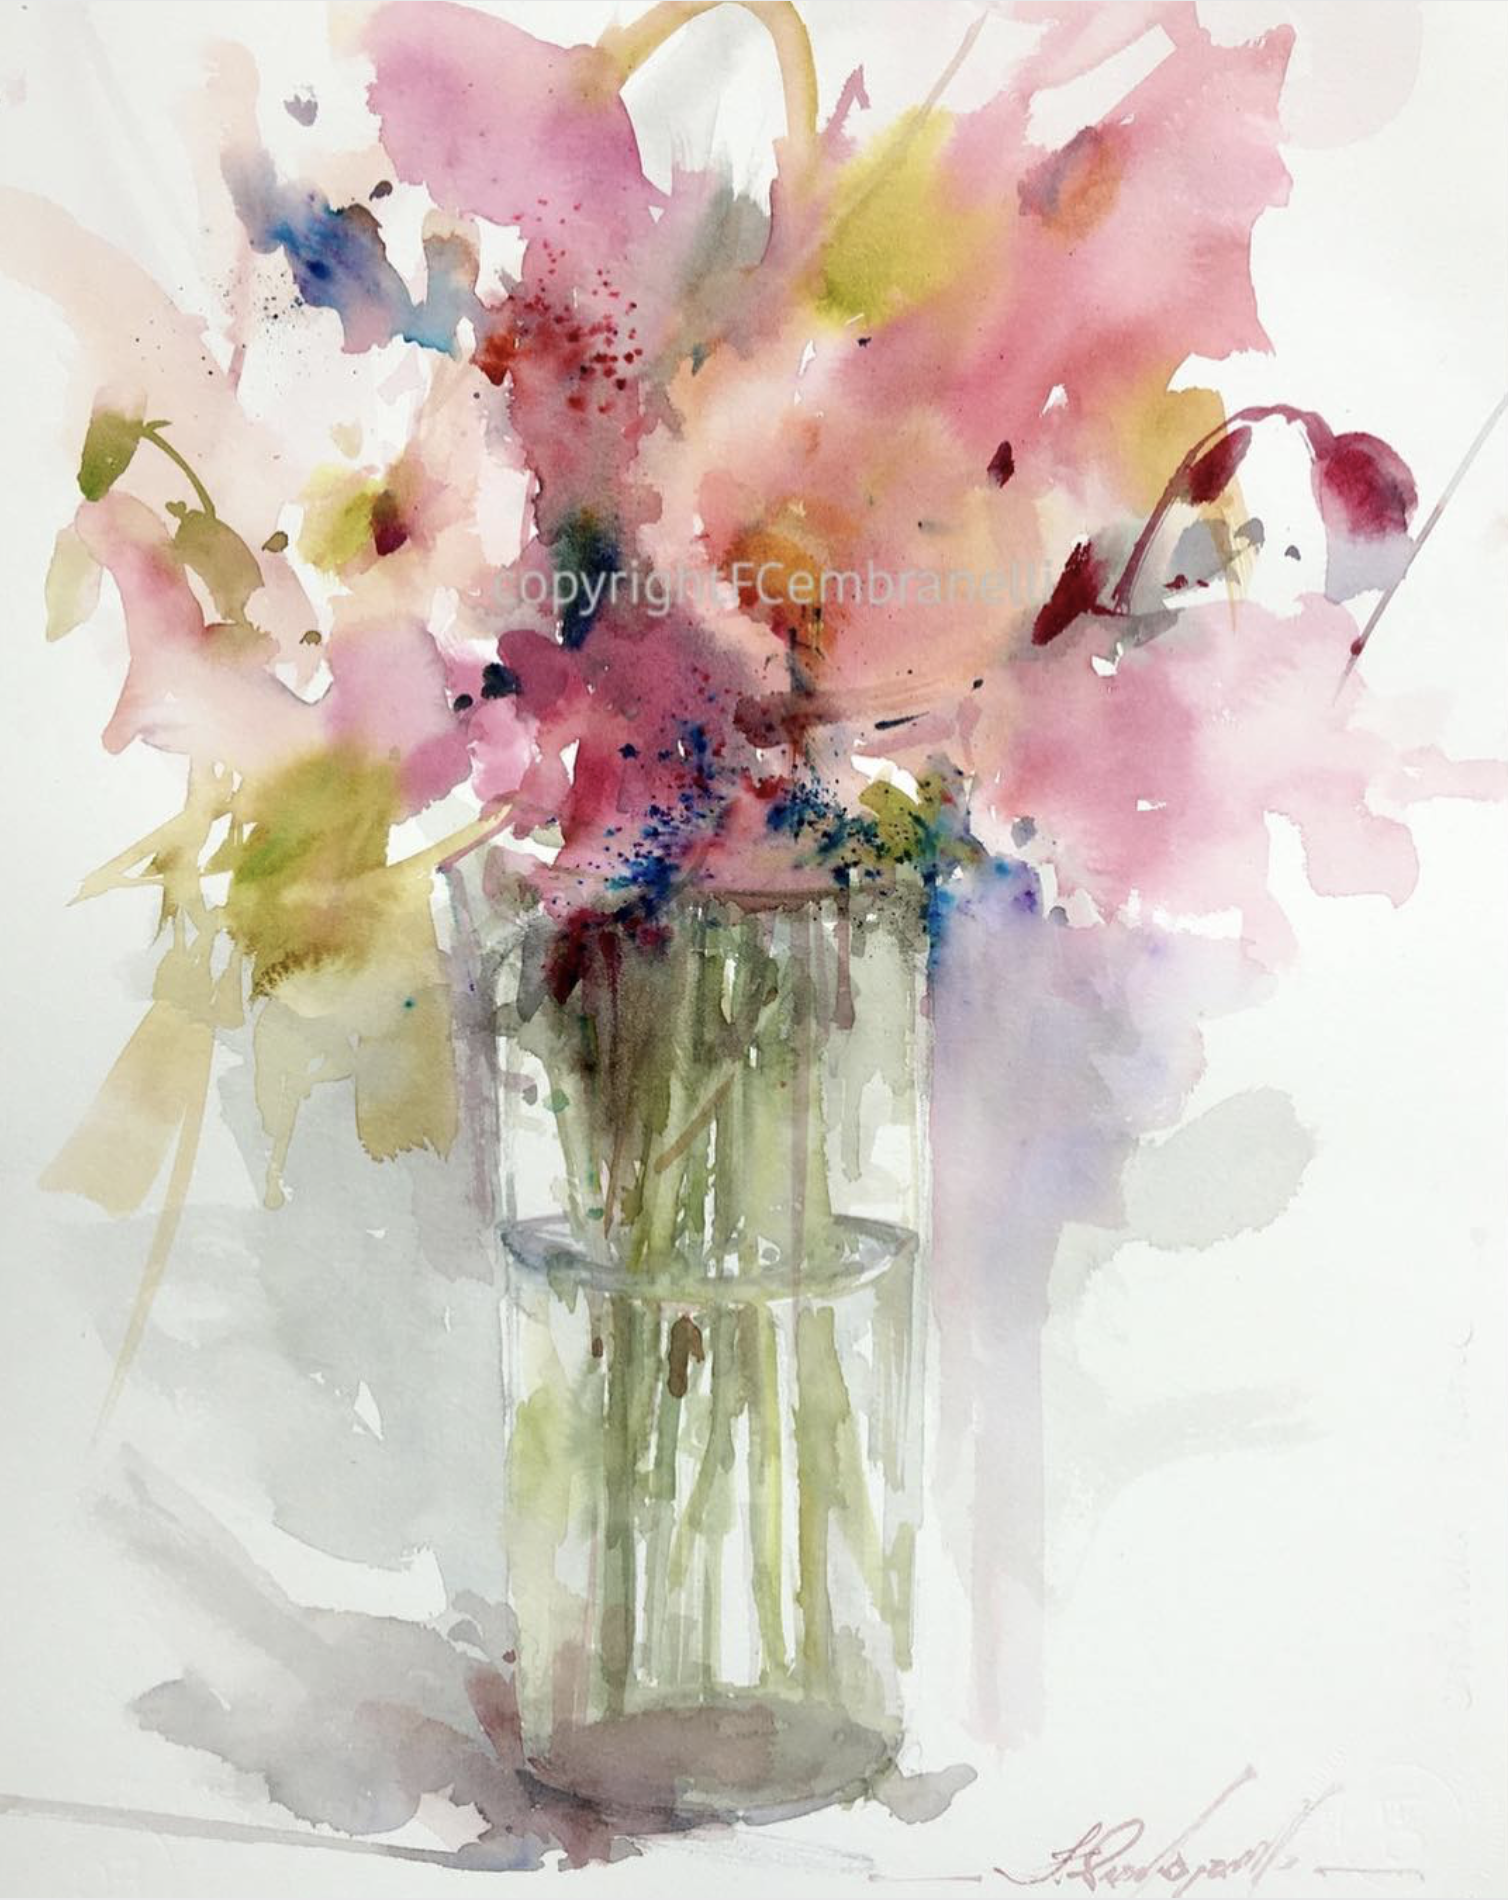 Fabio Cembranelli Watercolor Flowers Paintings Watercolor